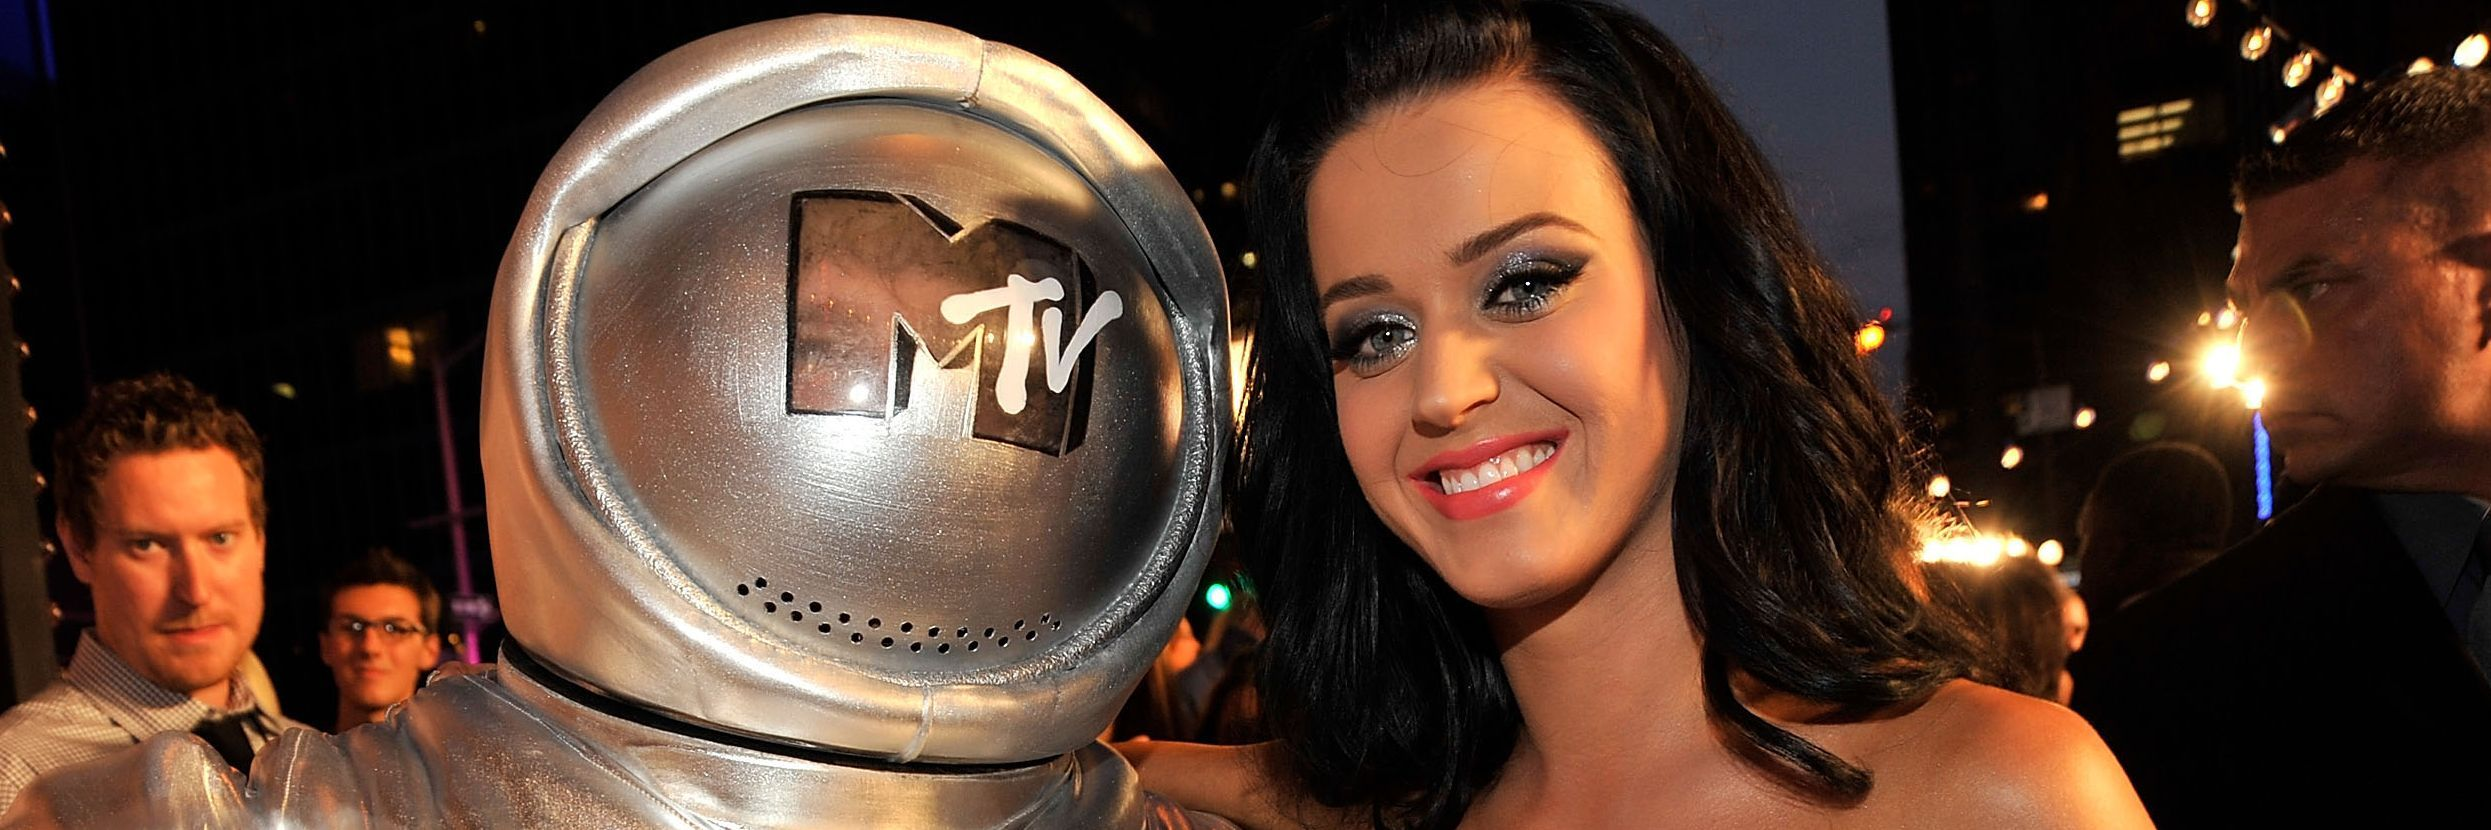 a3c88bab8d4 Katy Perry s Most Unforgettable VMA Moments